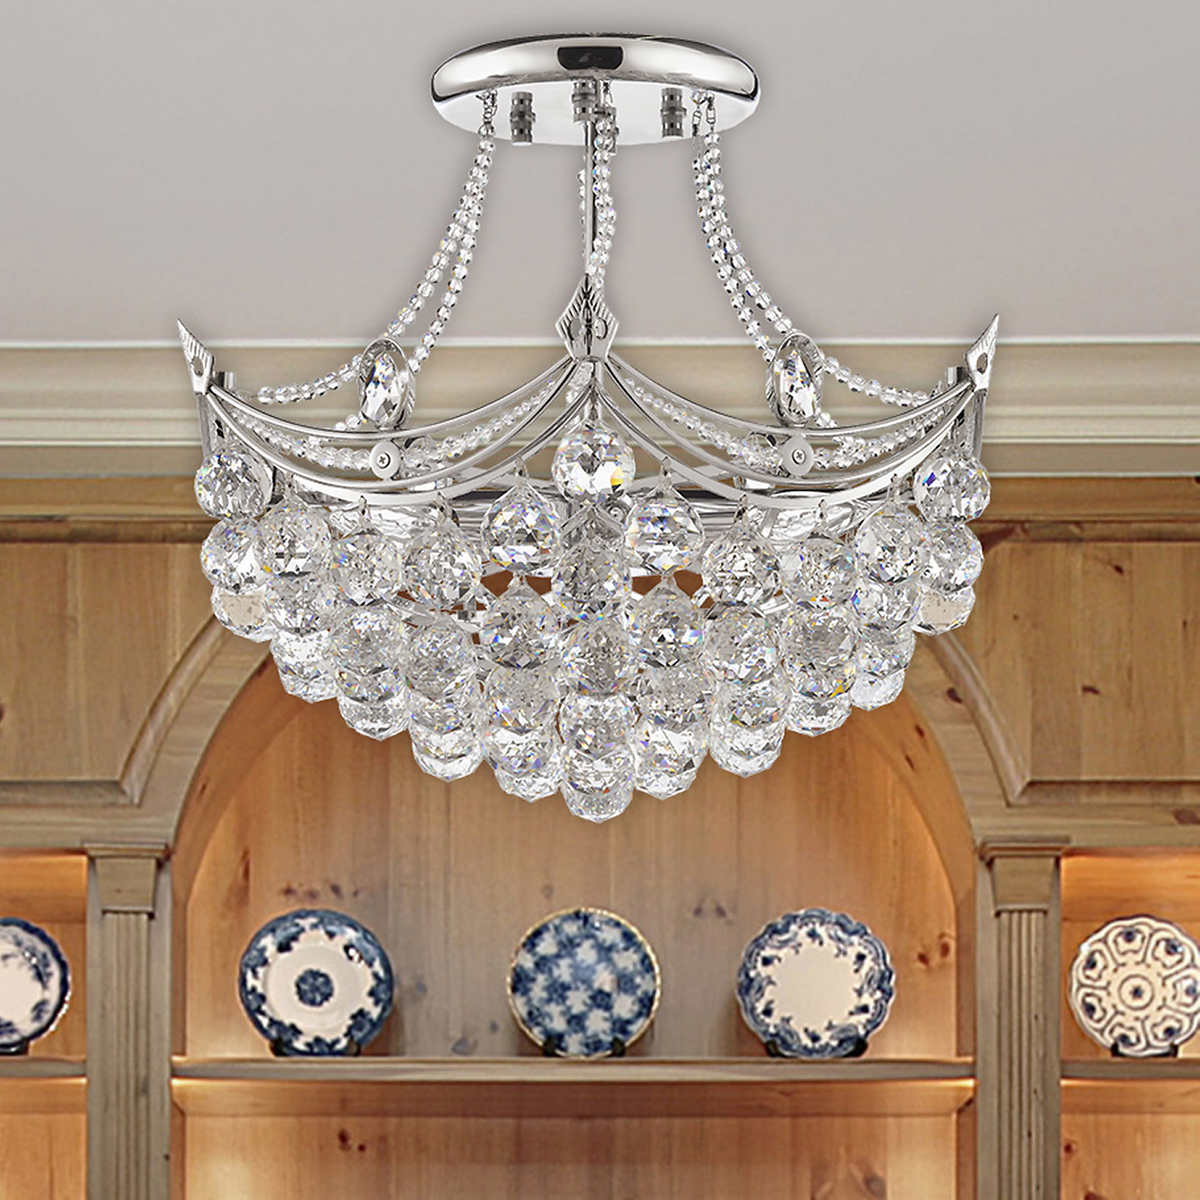 Lighting by pecaso pagoda chandelier in polished chrome 19l x 20 lighting by pecaso pagoda chandelier in polished chrome 19l x 20w 25 lbs number of lights 6 arubaitofo Choice Image